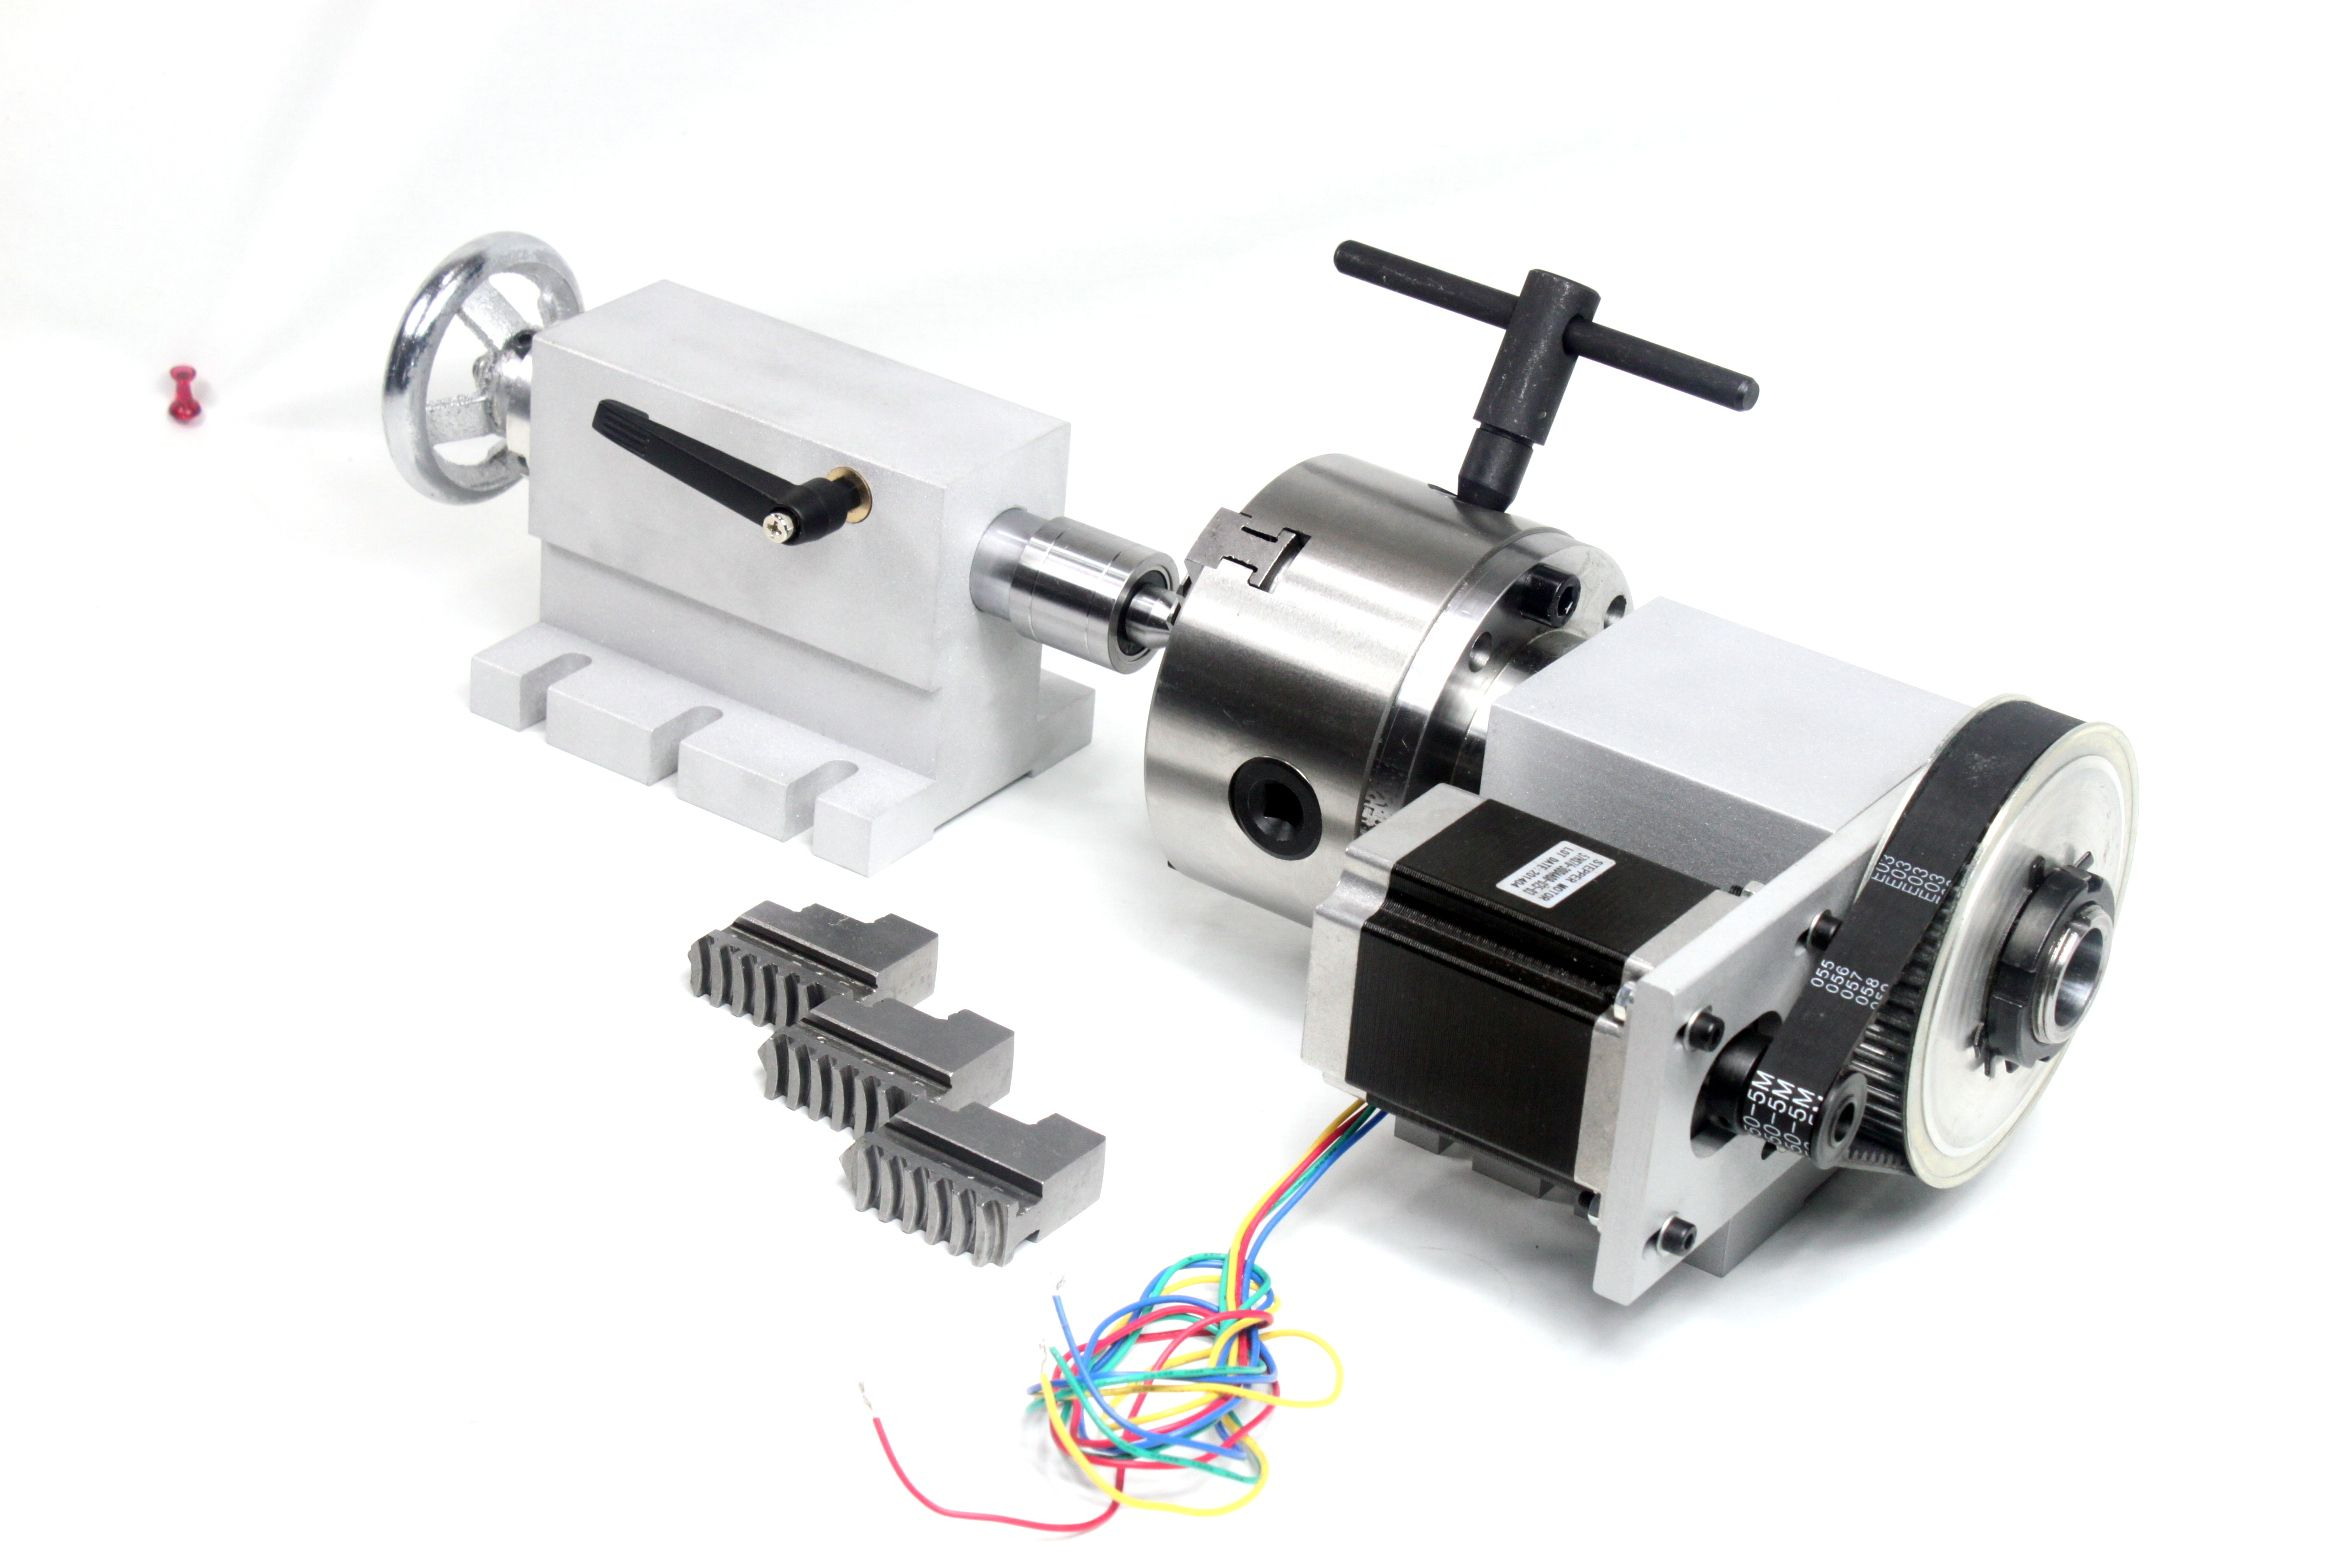 Pin by on BuildYourCNC Cnc parts, Cnc